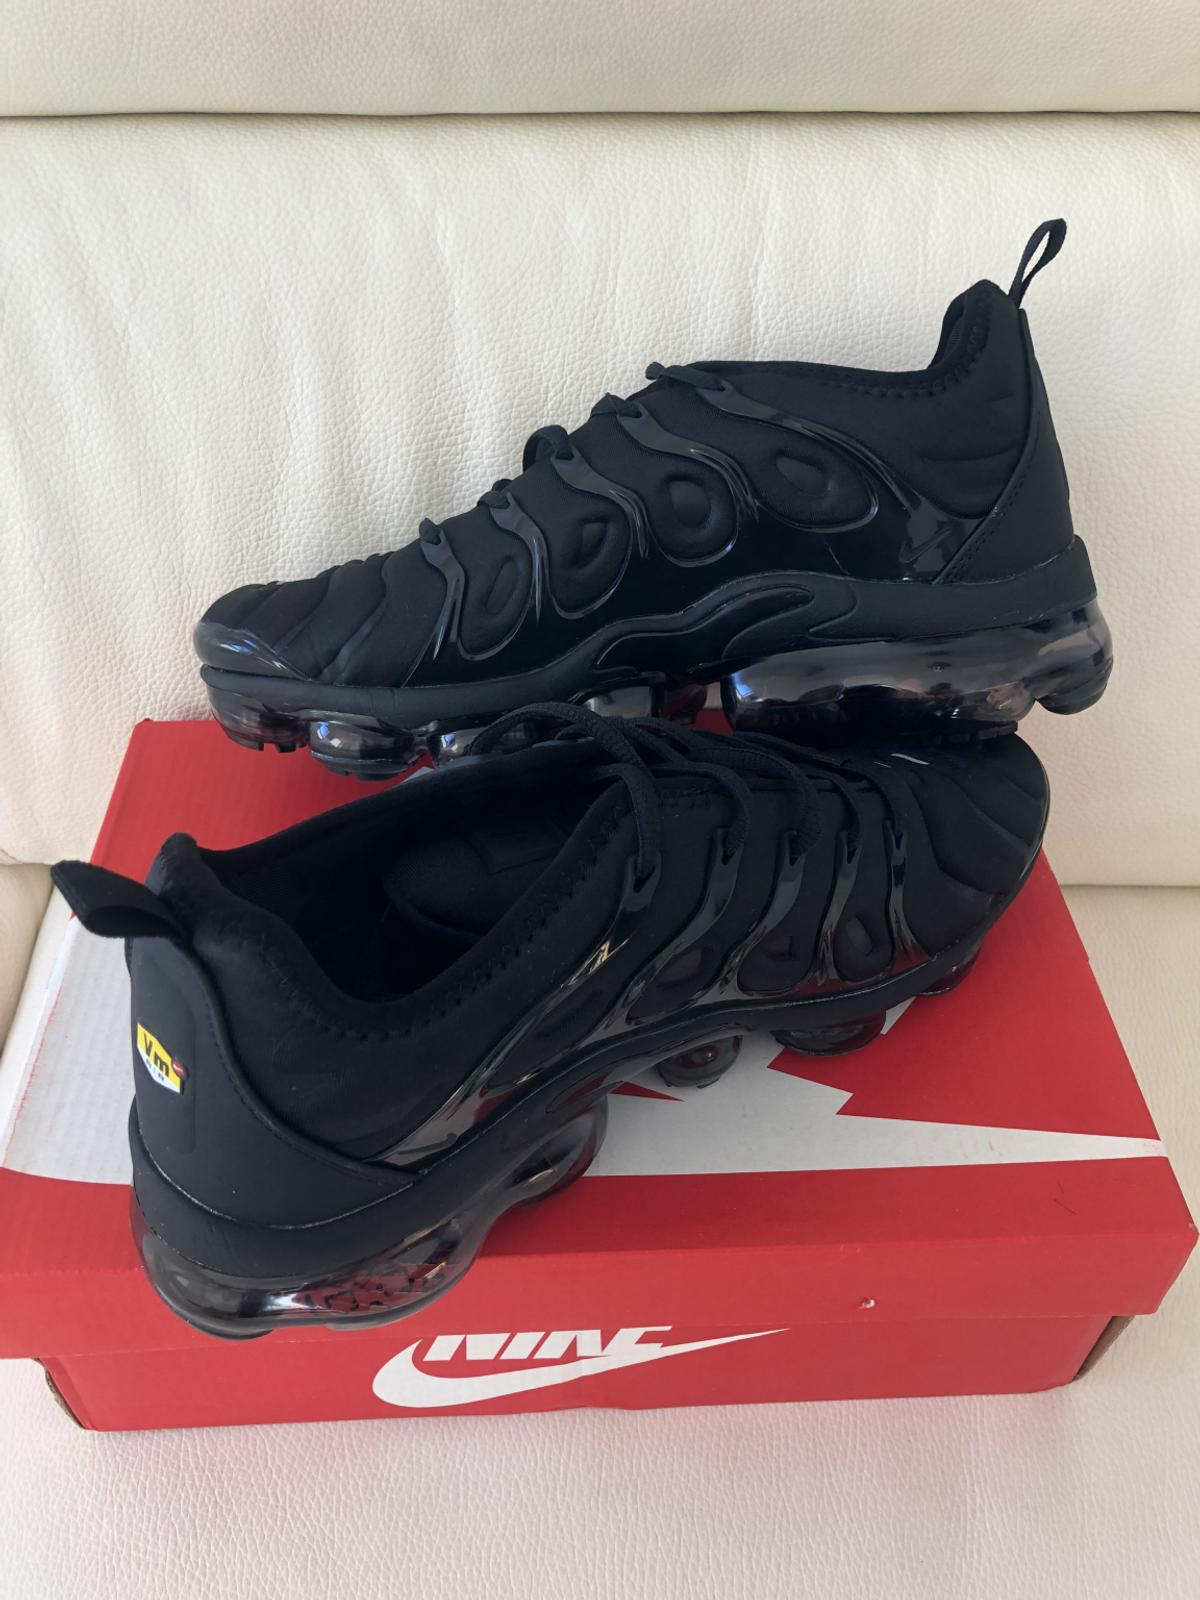 brand new 01e17 a8d05 Nike Air Vapormax TN Plus Triple Black 8.5&9 in W4 Hounslow ...